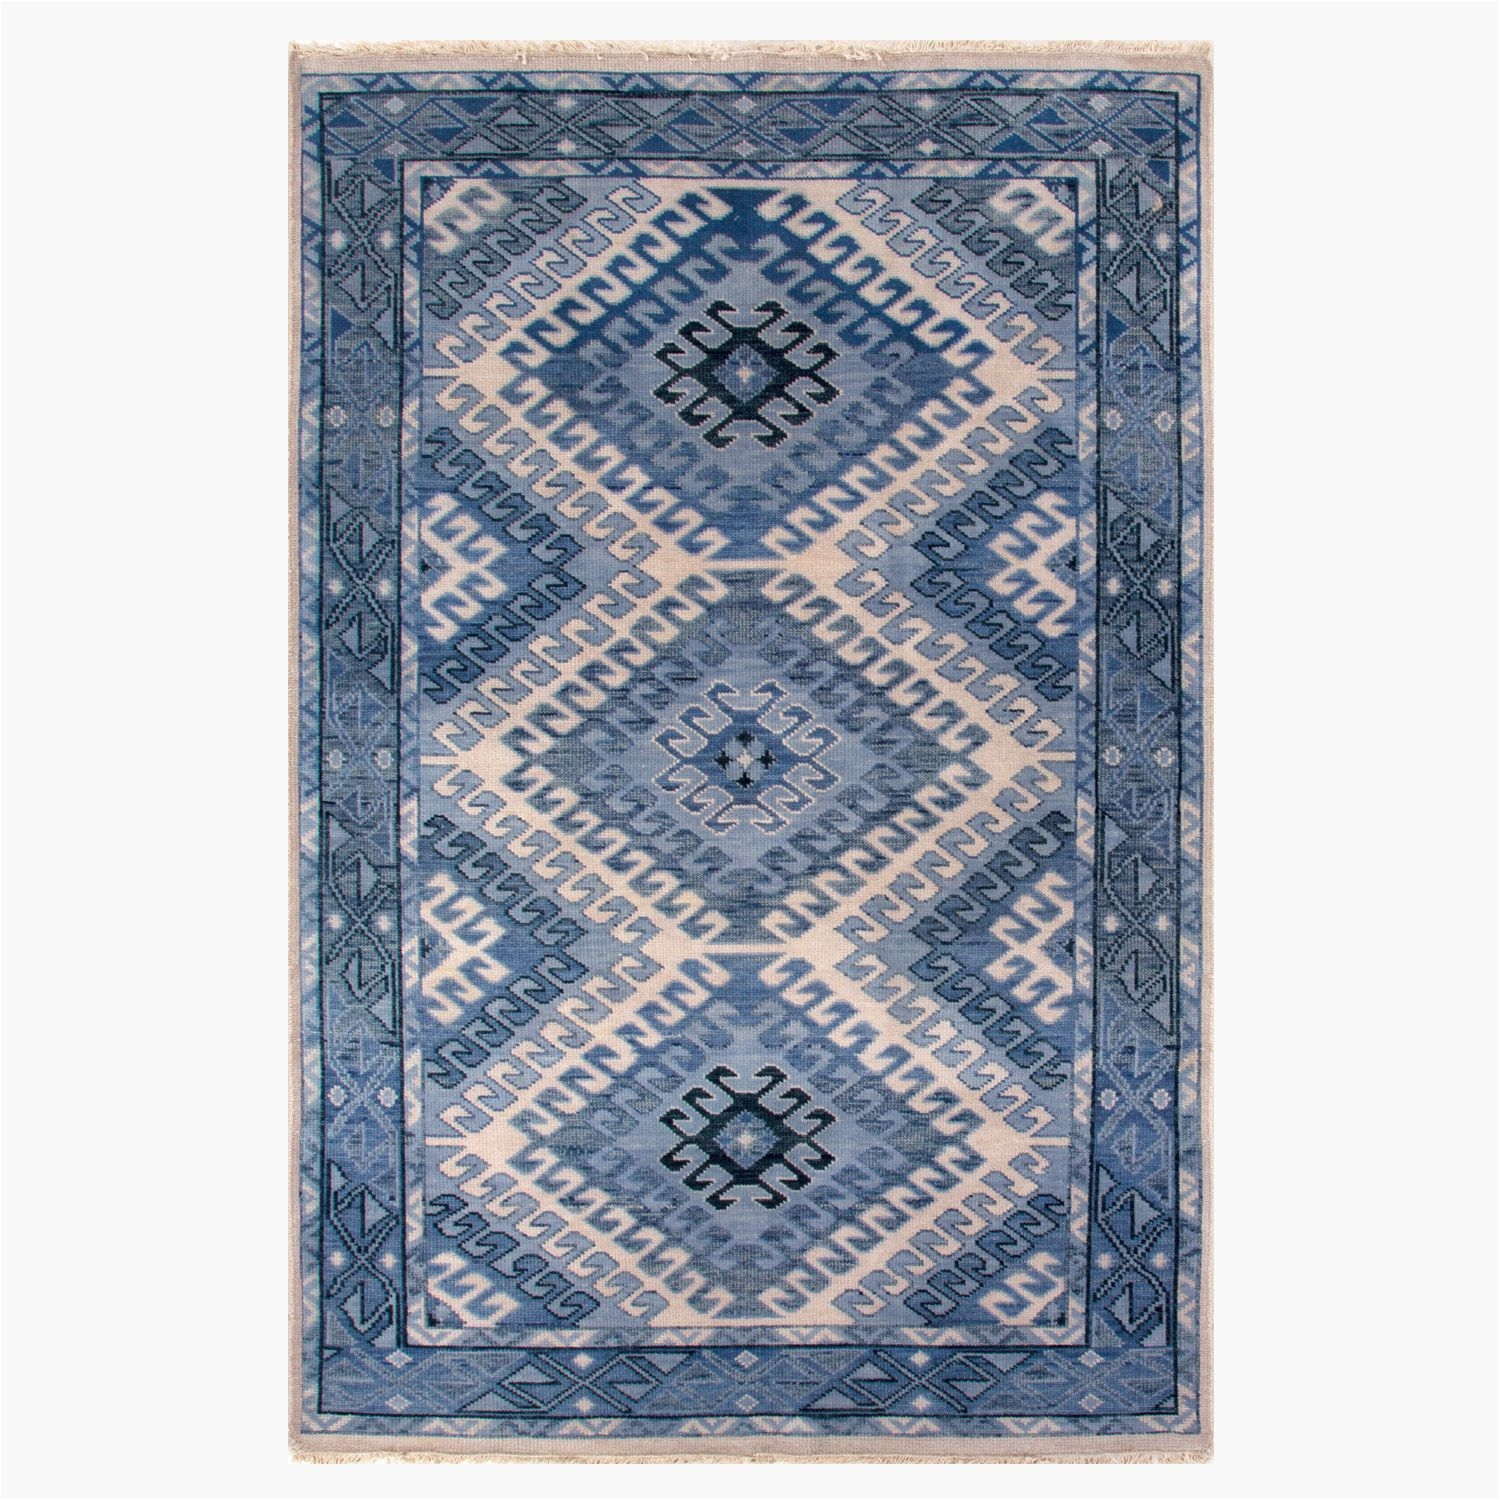 our amansala indigo wool rug is a modern take on traditional rug designs sophisticated neutral color palette in shades of warm coral